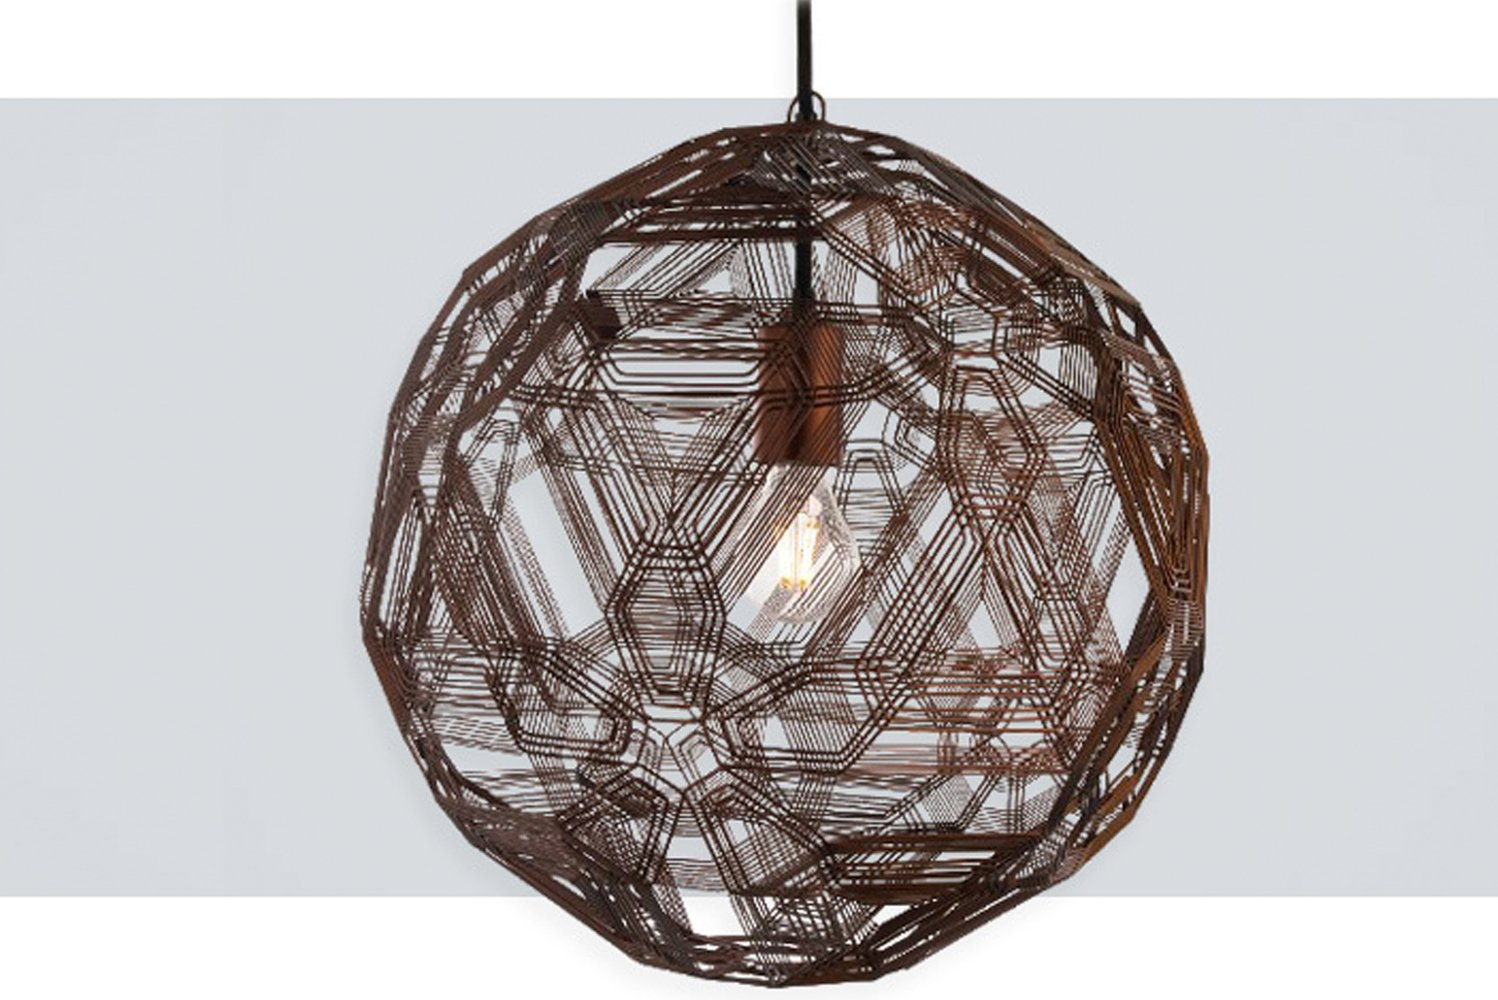 Zatellite by Uplight Group was handmade by Filipino artisans using galvanized iron, a malleable material.